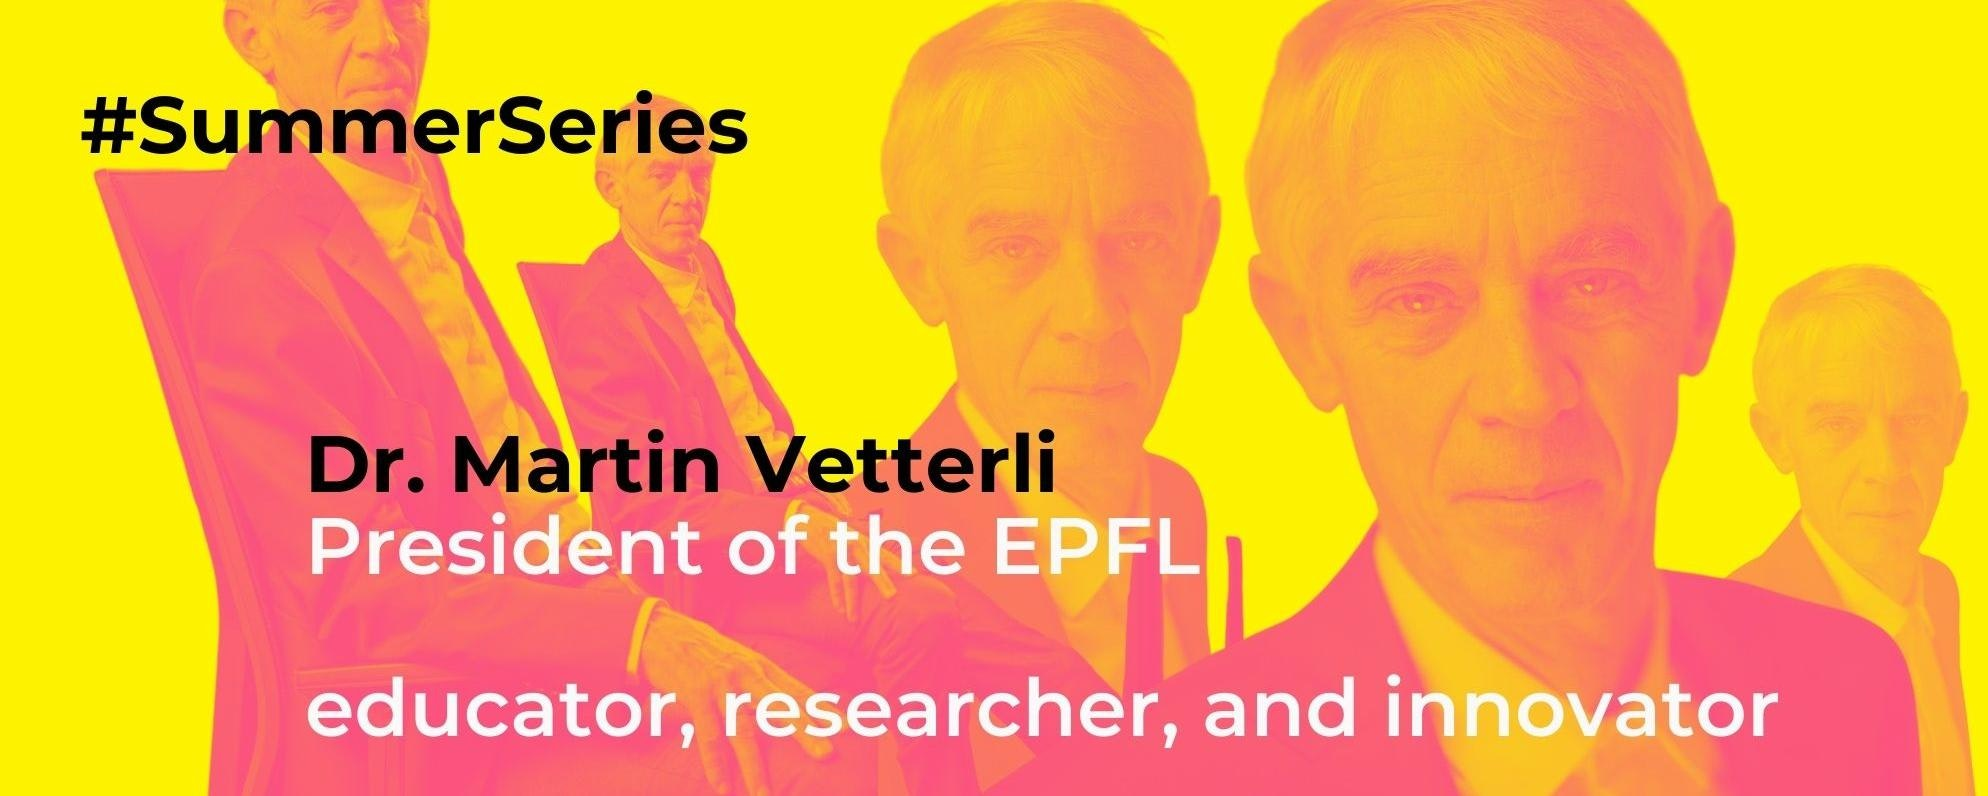 #SummerSeries: 5 questions for Martin Vetterli—educator, researcher, and innovator